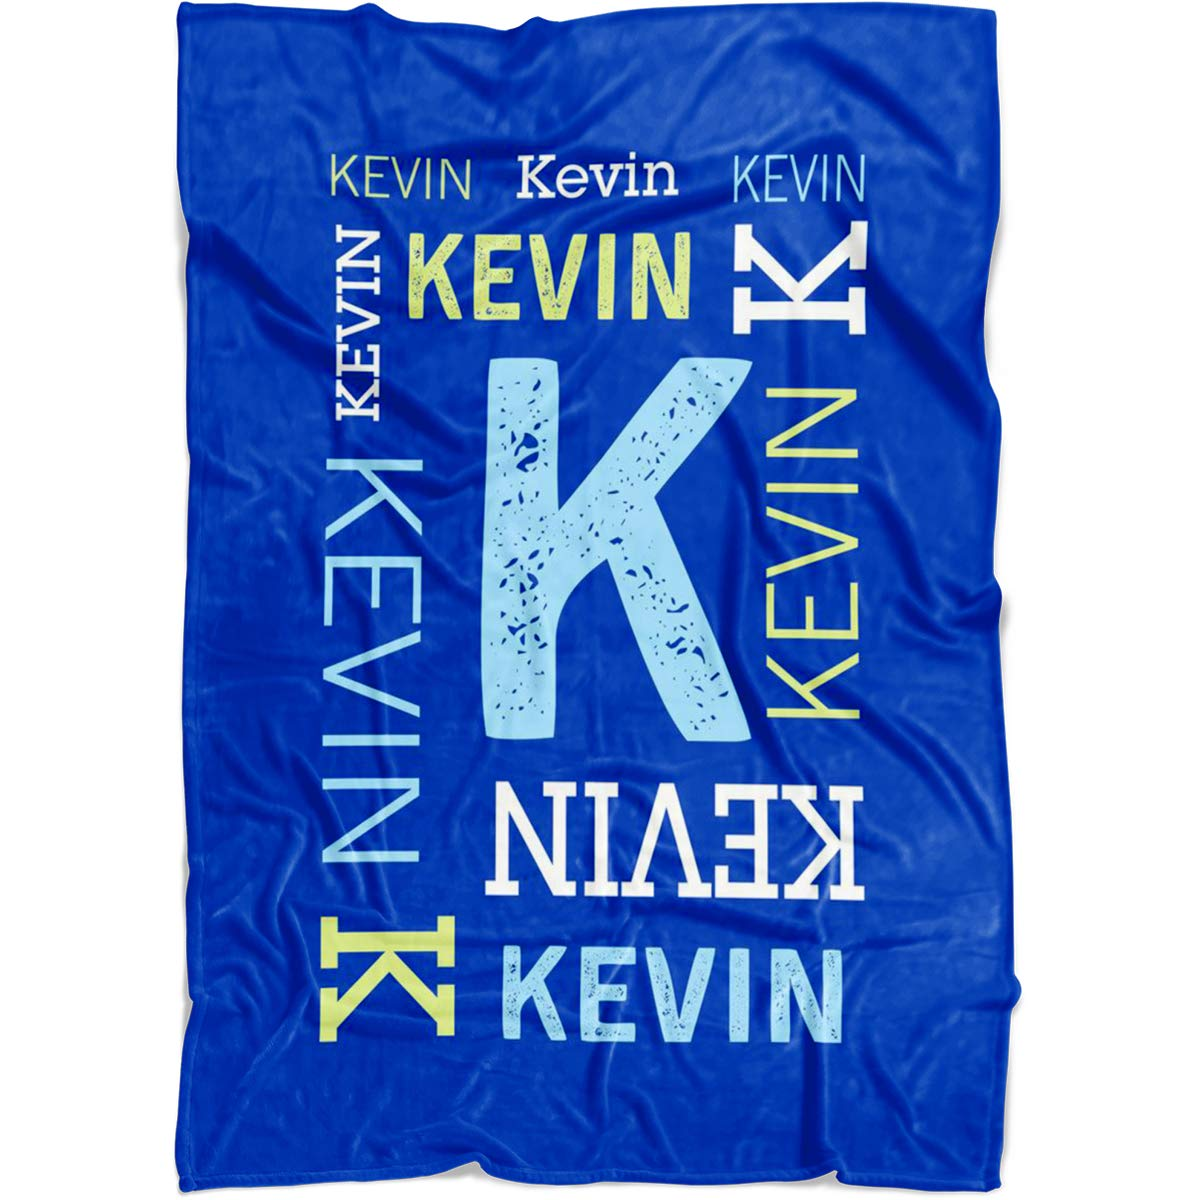 Personalized Name Blanket for Baby Boy Girl and Kids. Custom Name Blanket from Your Baby's Name. Repeating Name Customized Fleece Throw. Gift for Birthday, New Dad, New Mom, Christmas (Blue) by Yeh Gift